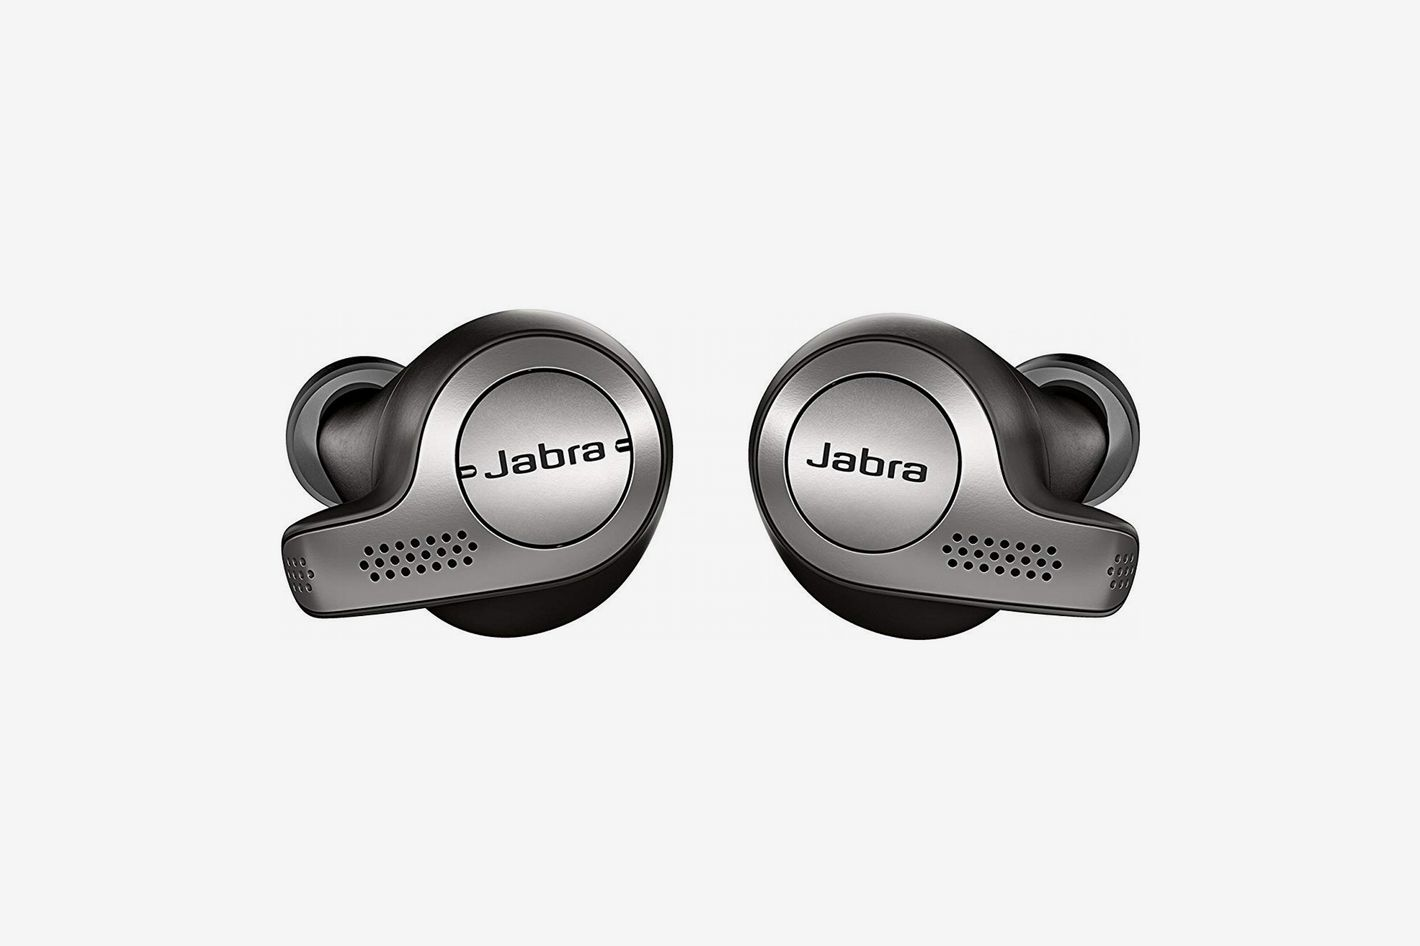 Jabra Elite 65t Alexa-Enabled True Wireless Earbuds With Charging Case